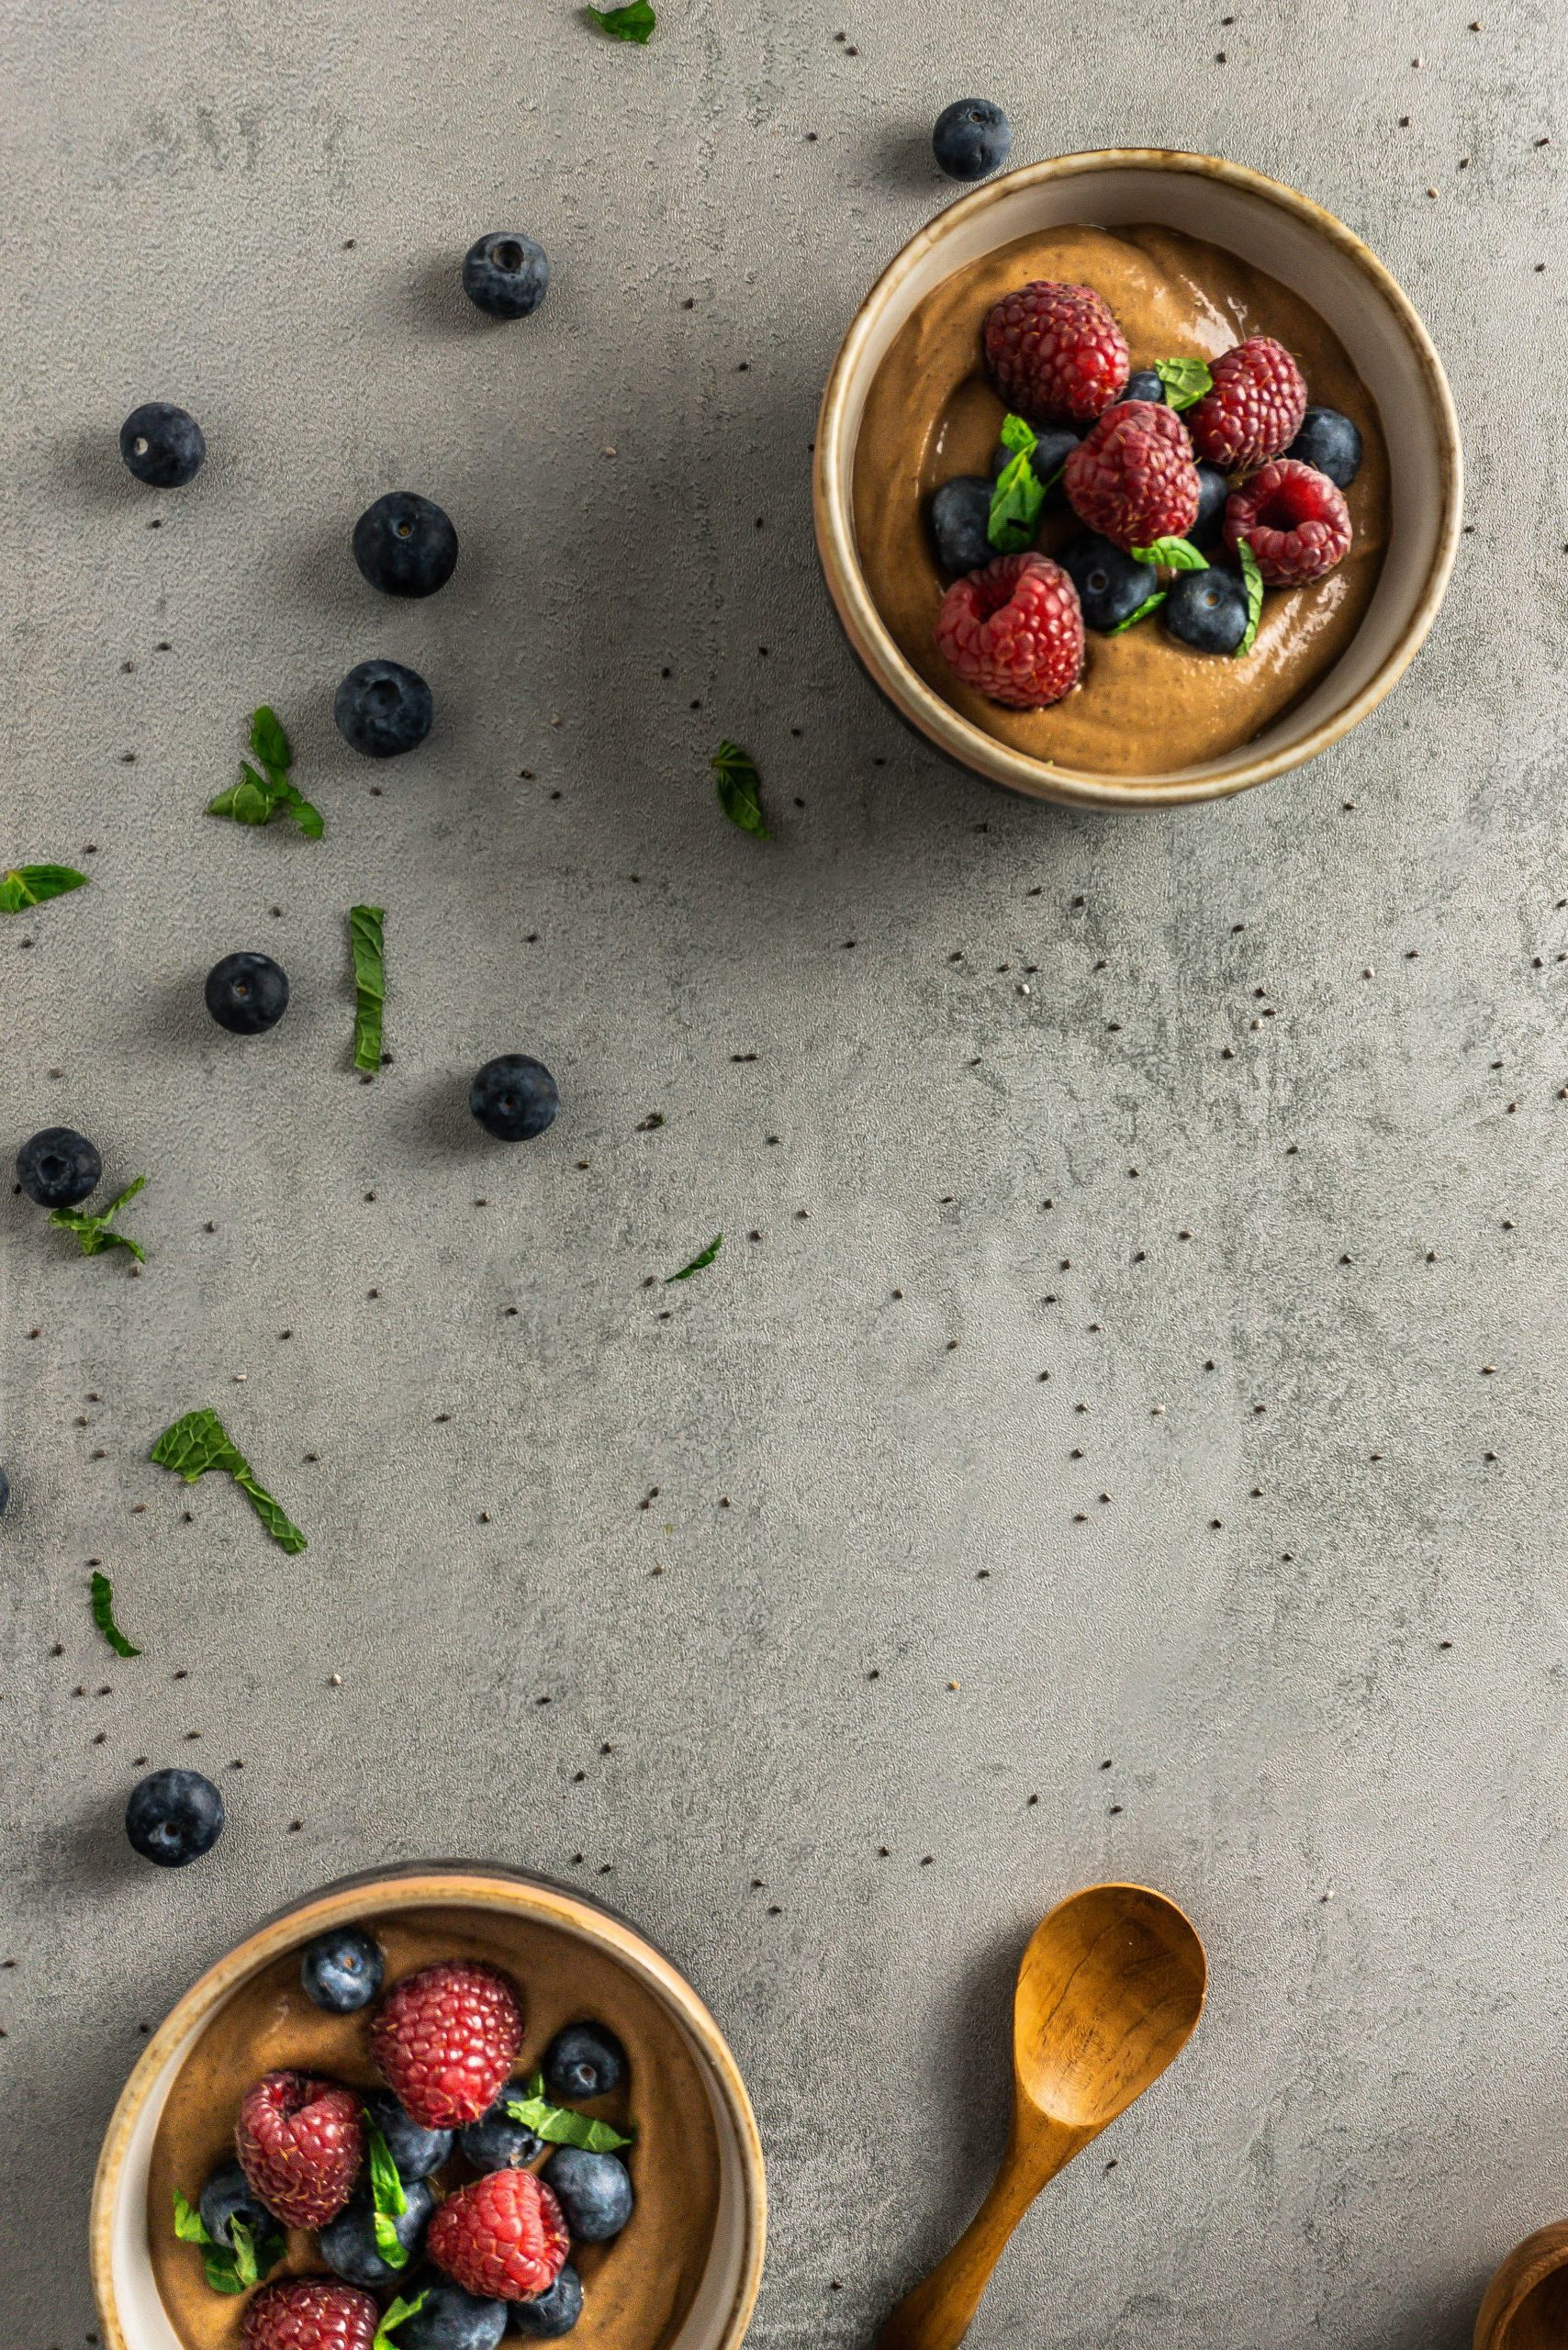 Chocolate Chia Seed Puddings in two bowls, topped with blueberries, raspberries, mint leaves. Photographed overhead on a grey background with blueberries, mint leaves, and chia seeds scattered around